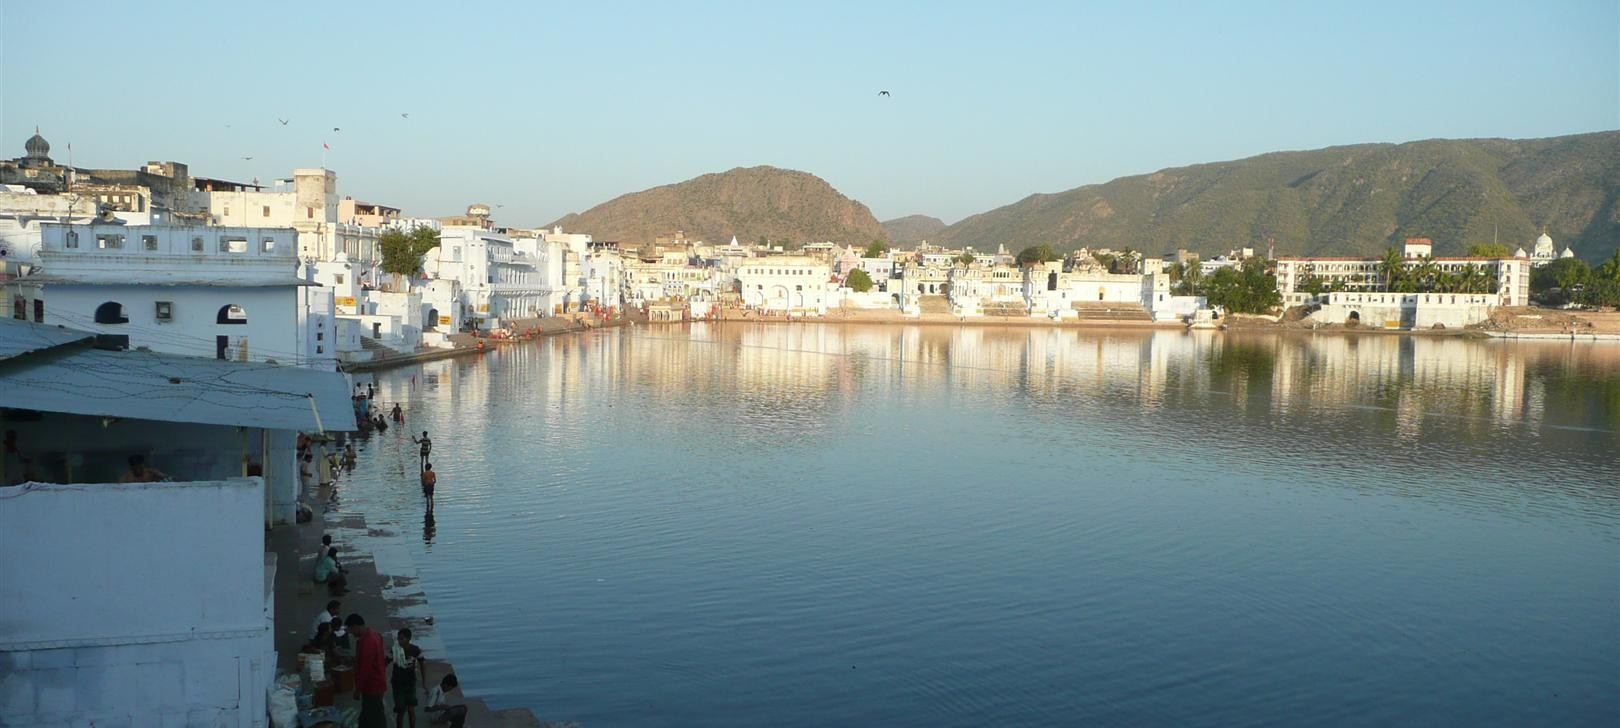 Pushkar lake (even more) (photo by Dick Sakahara)